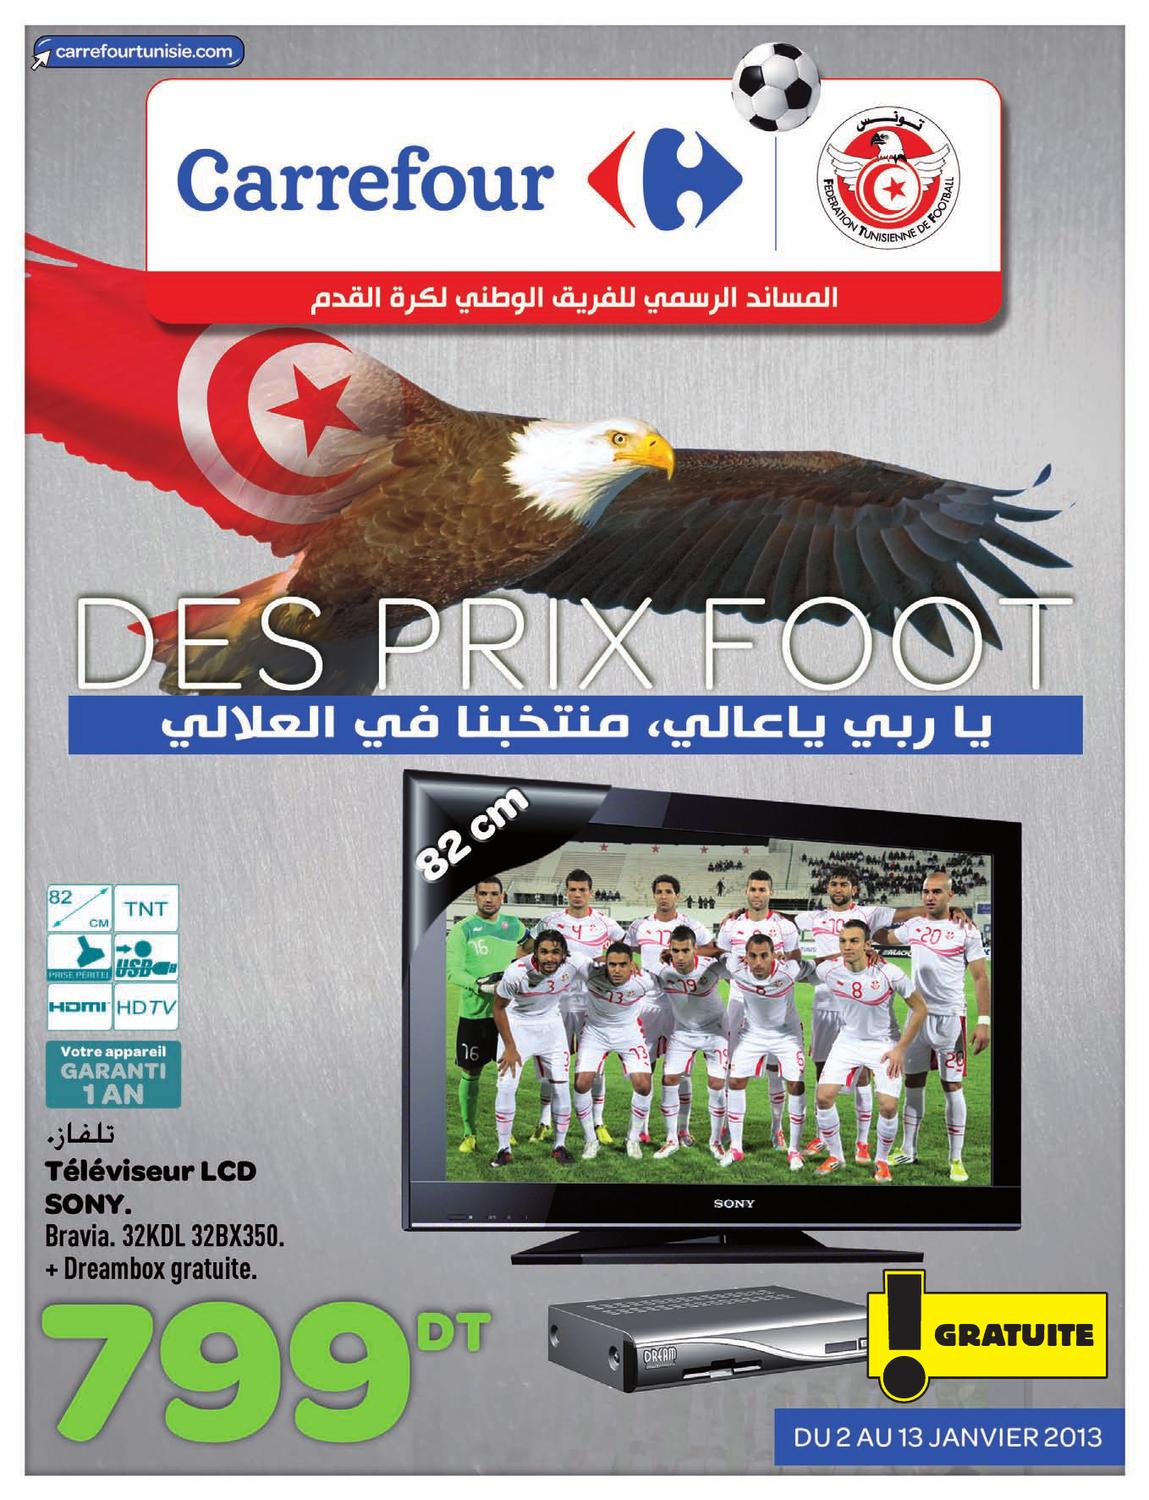 catalogue carrefour des prix foot by carrefour tunisie issuu. Black Bedroom Furniture Sets. Home Design Ideas